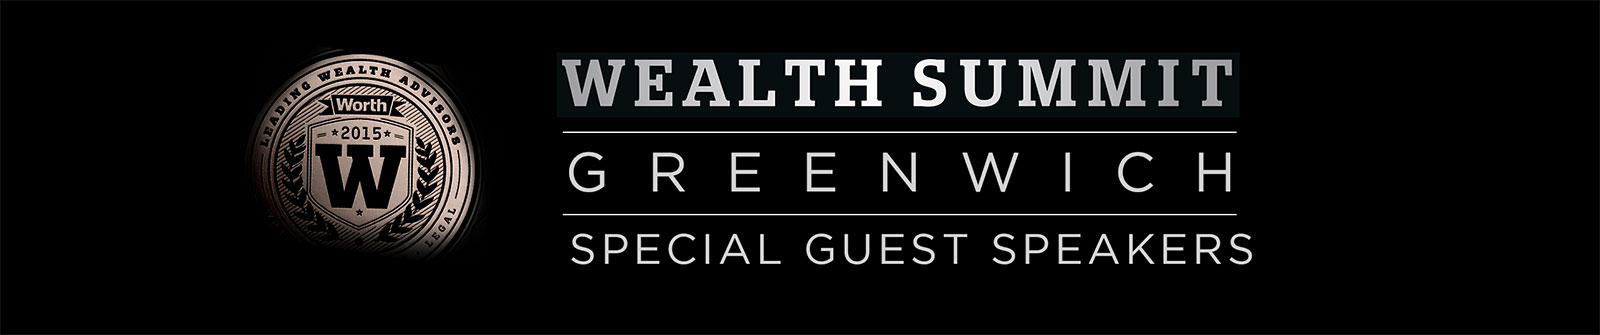 Worth Wealth Summit Greenwich Special Guest Speakers